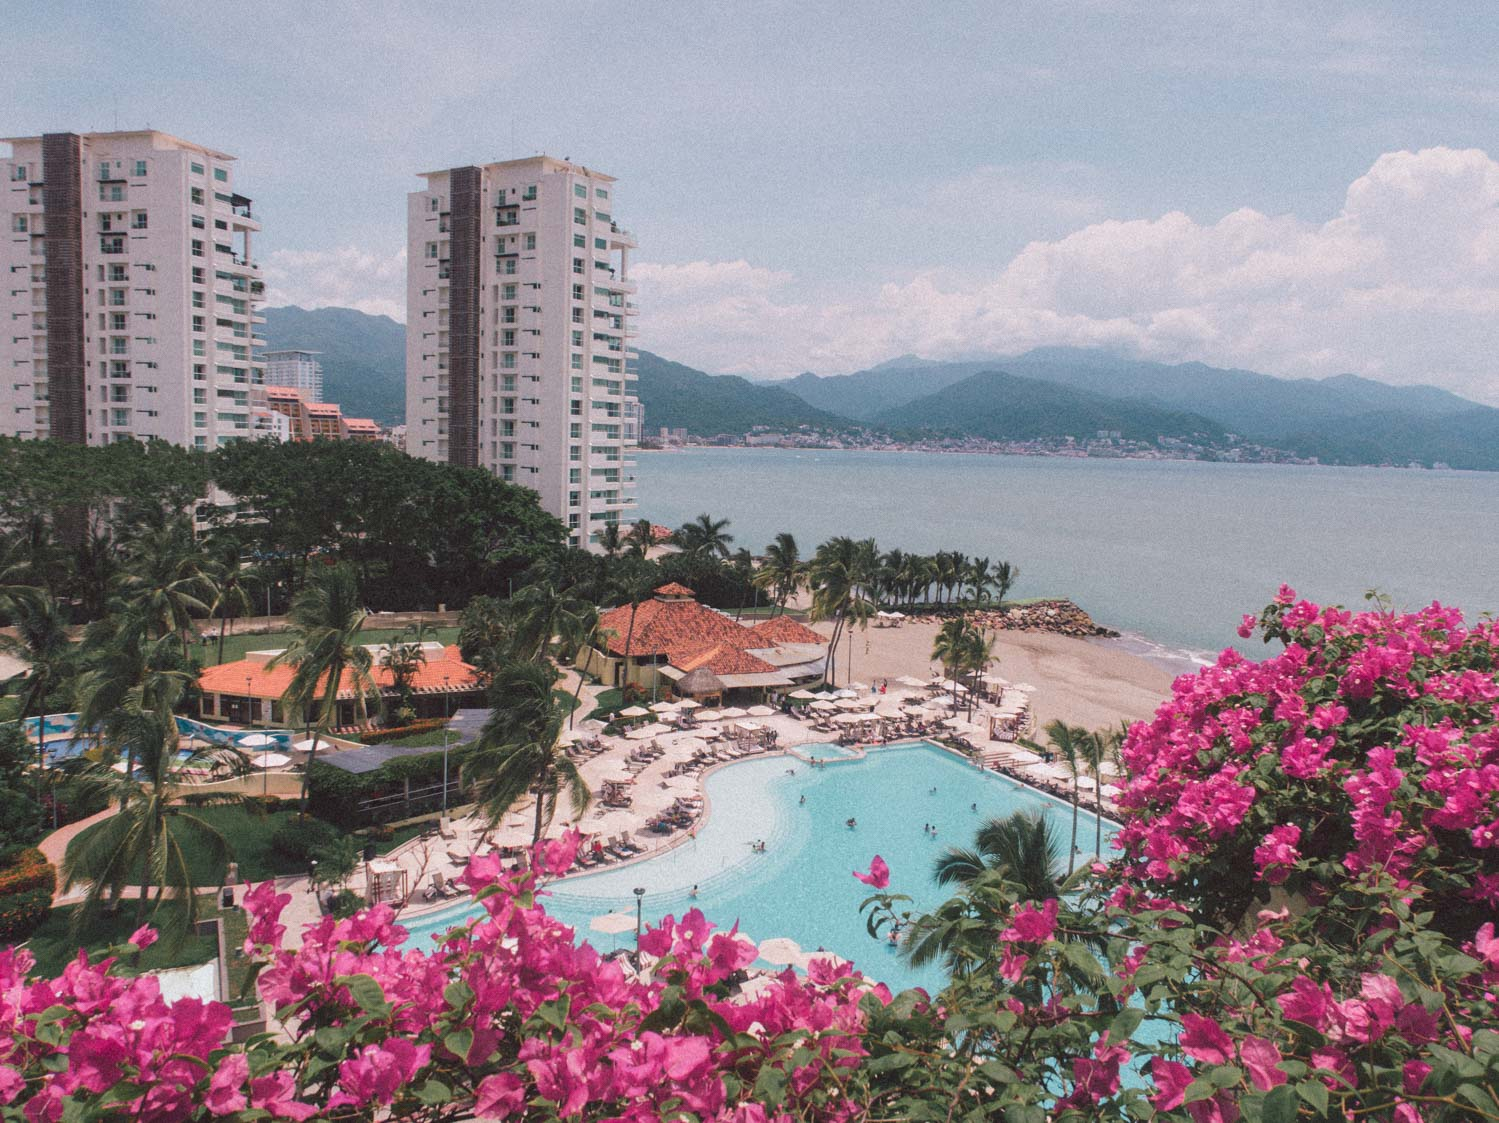 Elizabeth Hugen of Lizzie in Lace shares her Marriott Puerto Vallarta review.